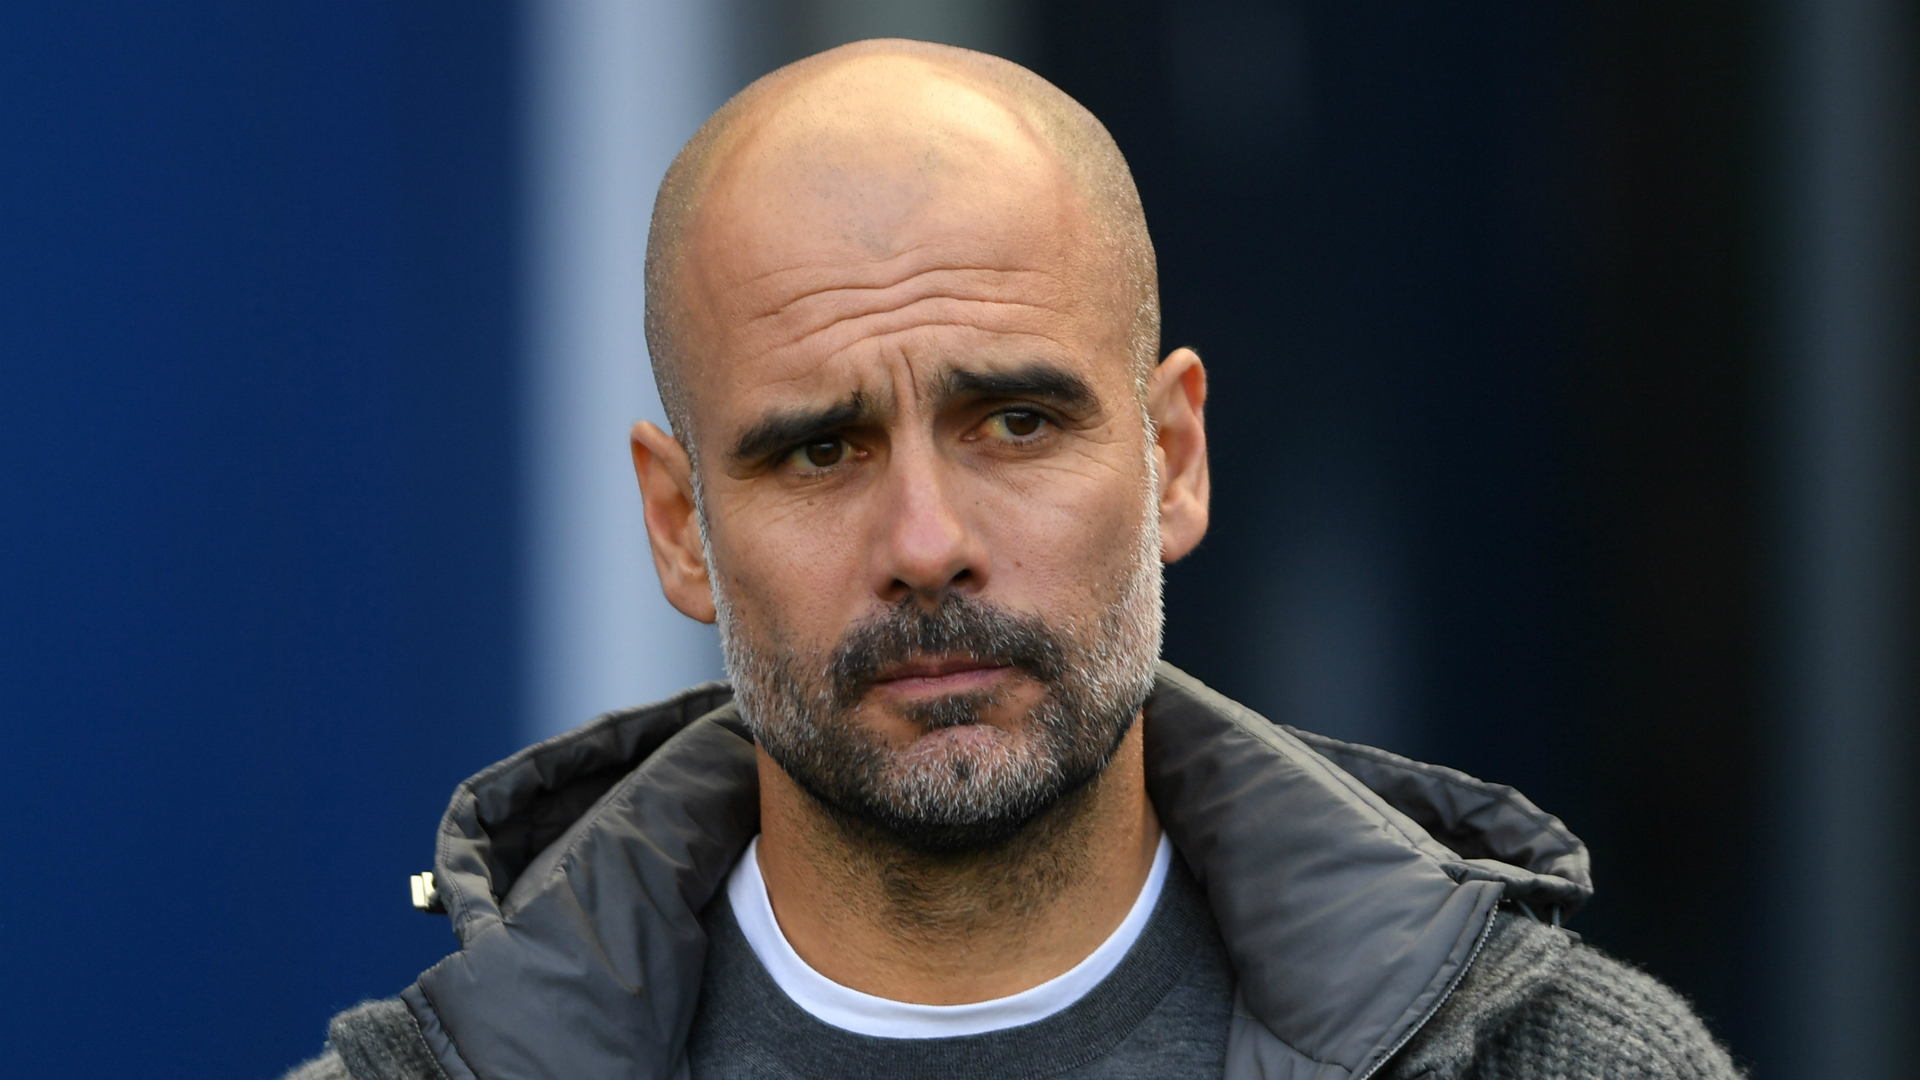 Guardiola named the exact date of his return to Barcelona